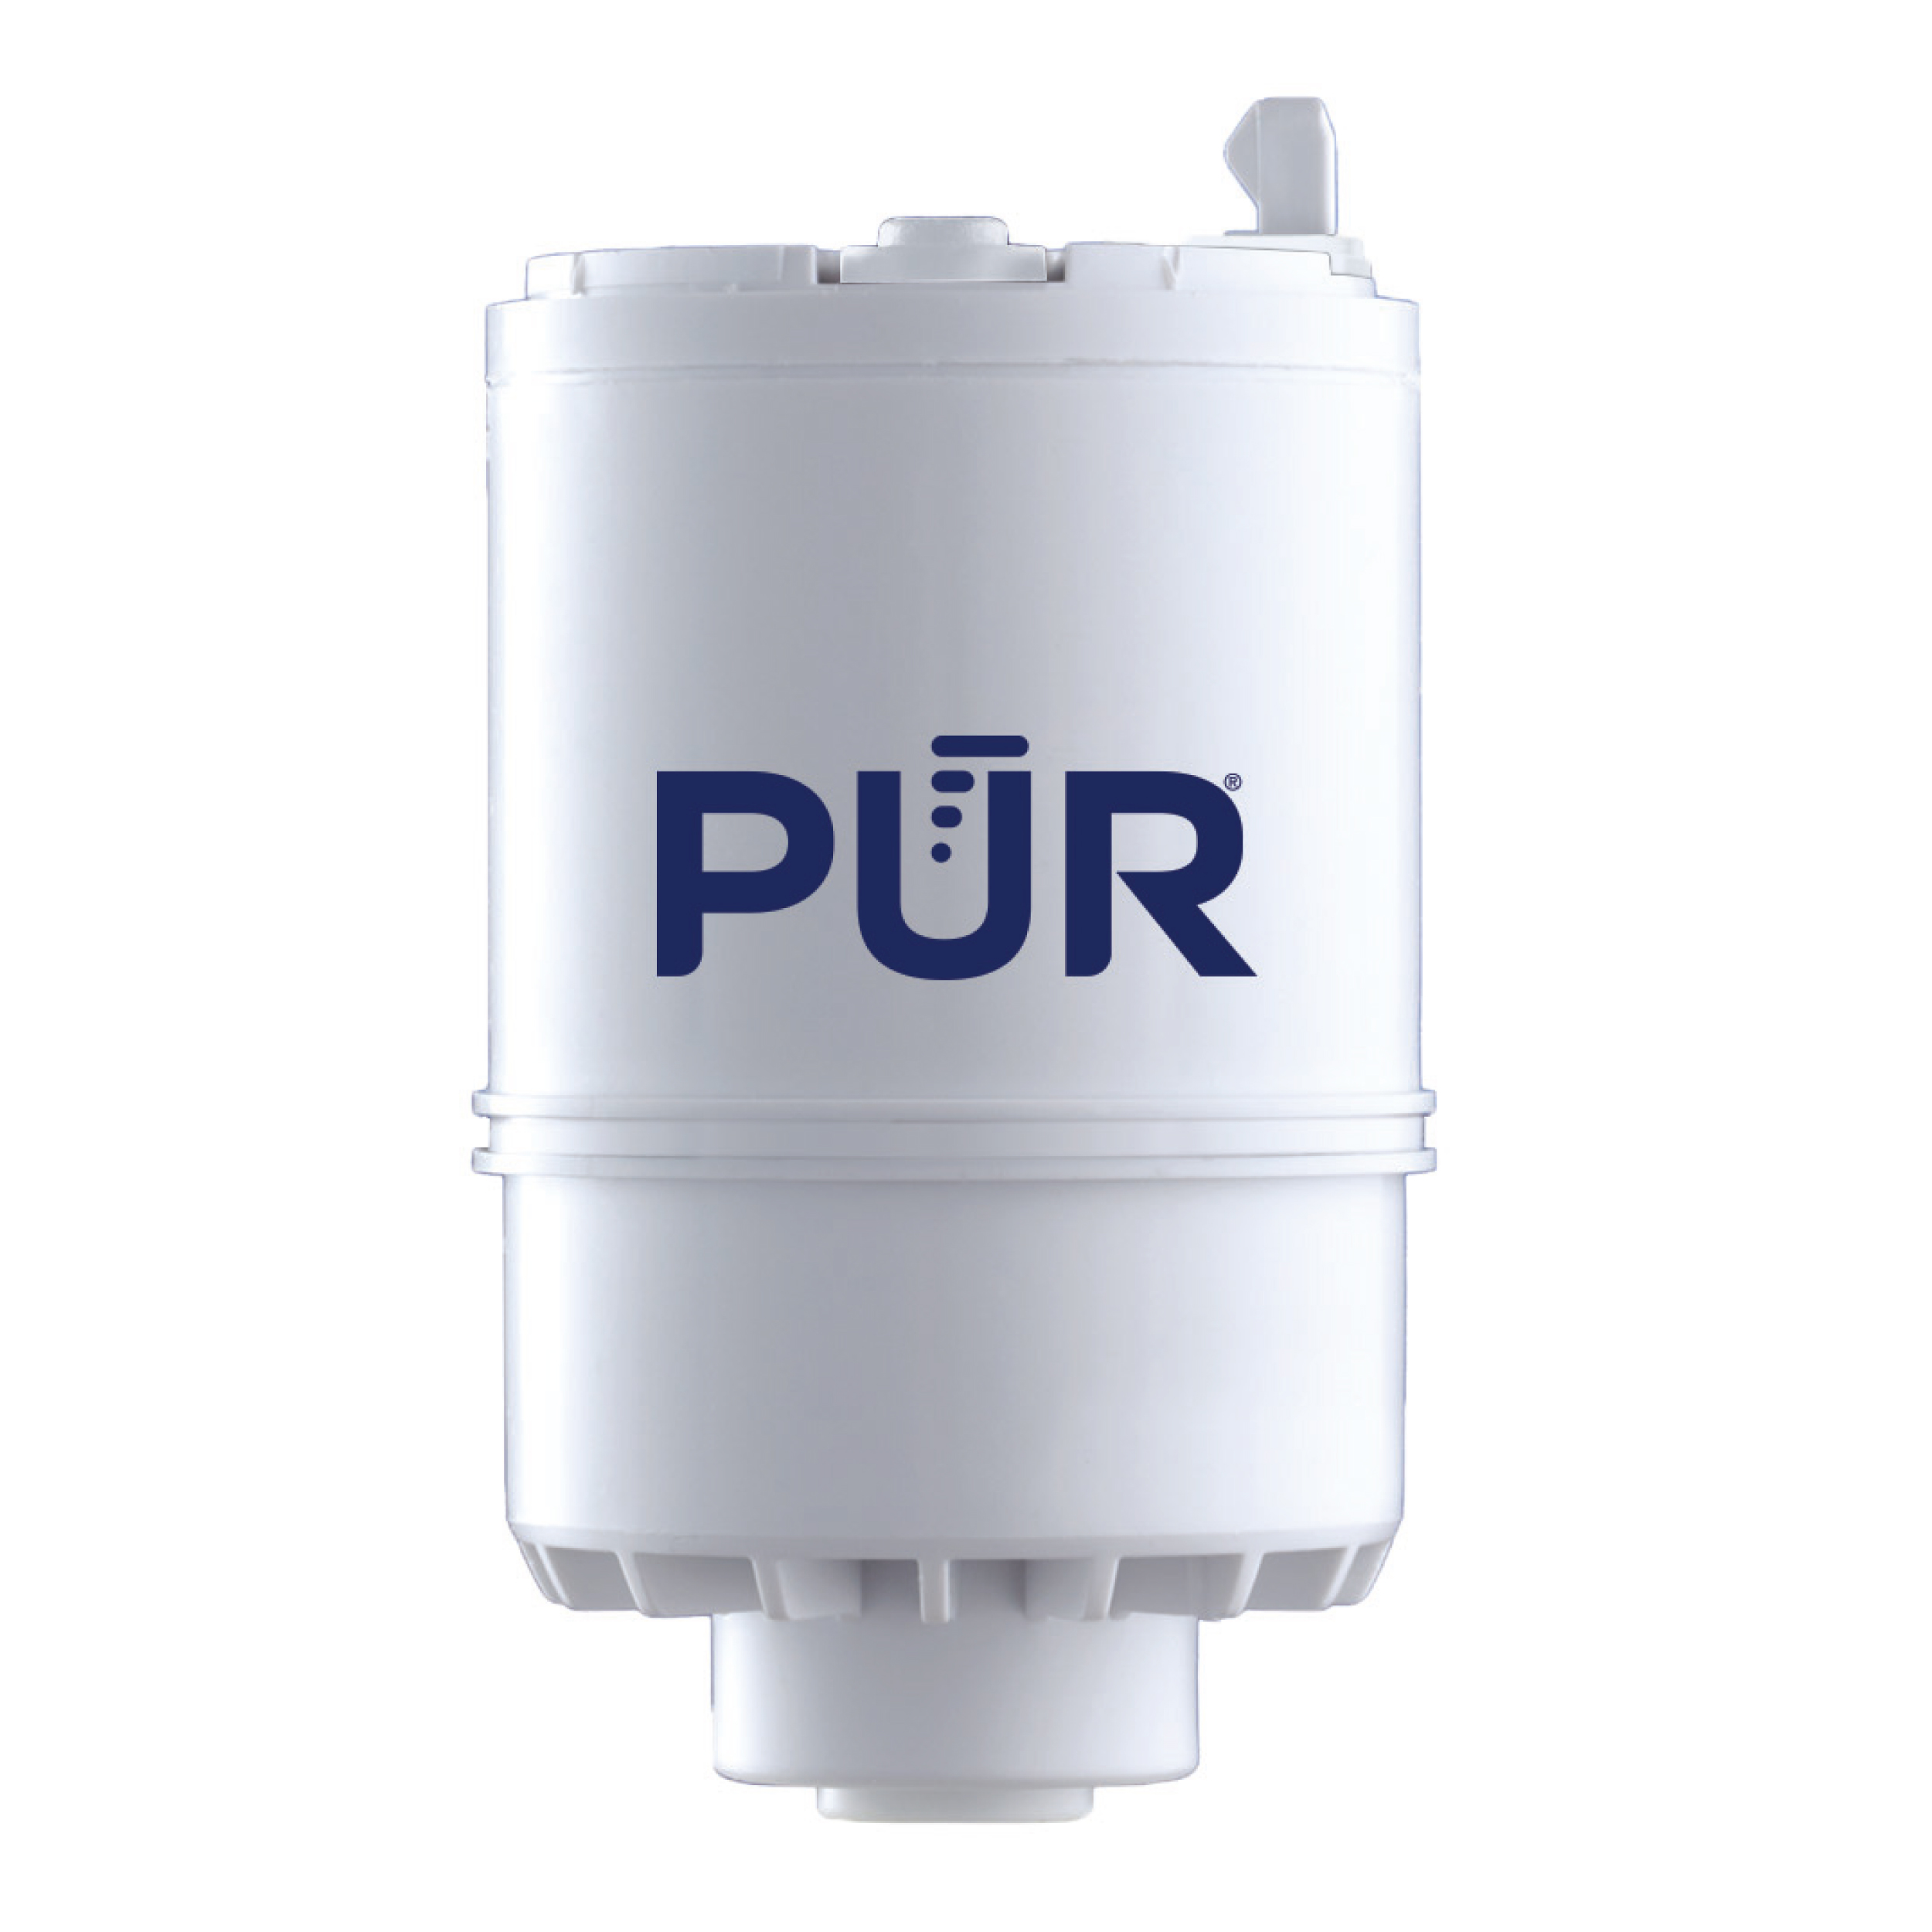 pur basic faucet water replacement filter rf3375 2 2 pack